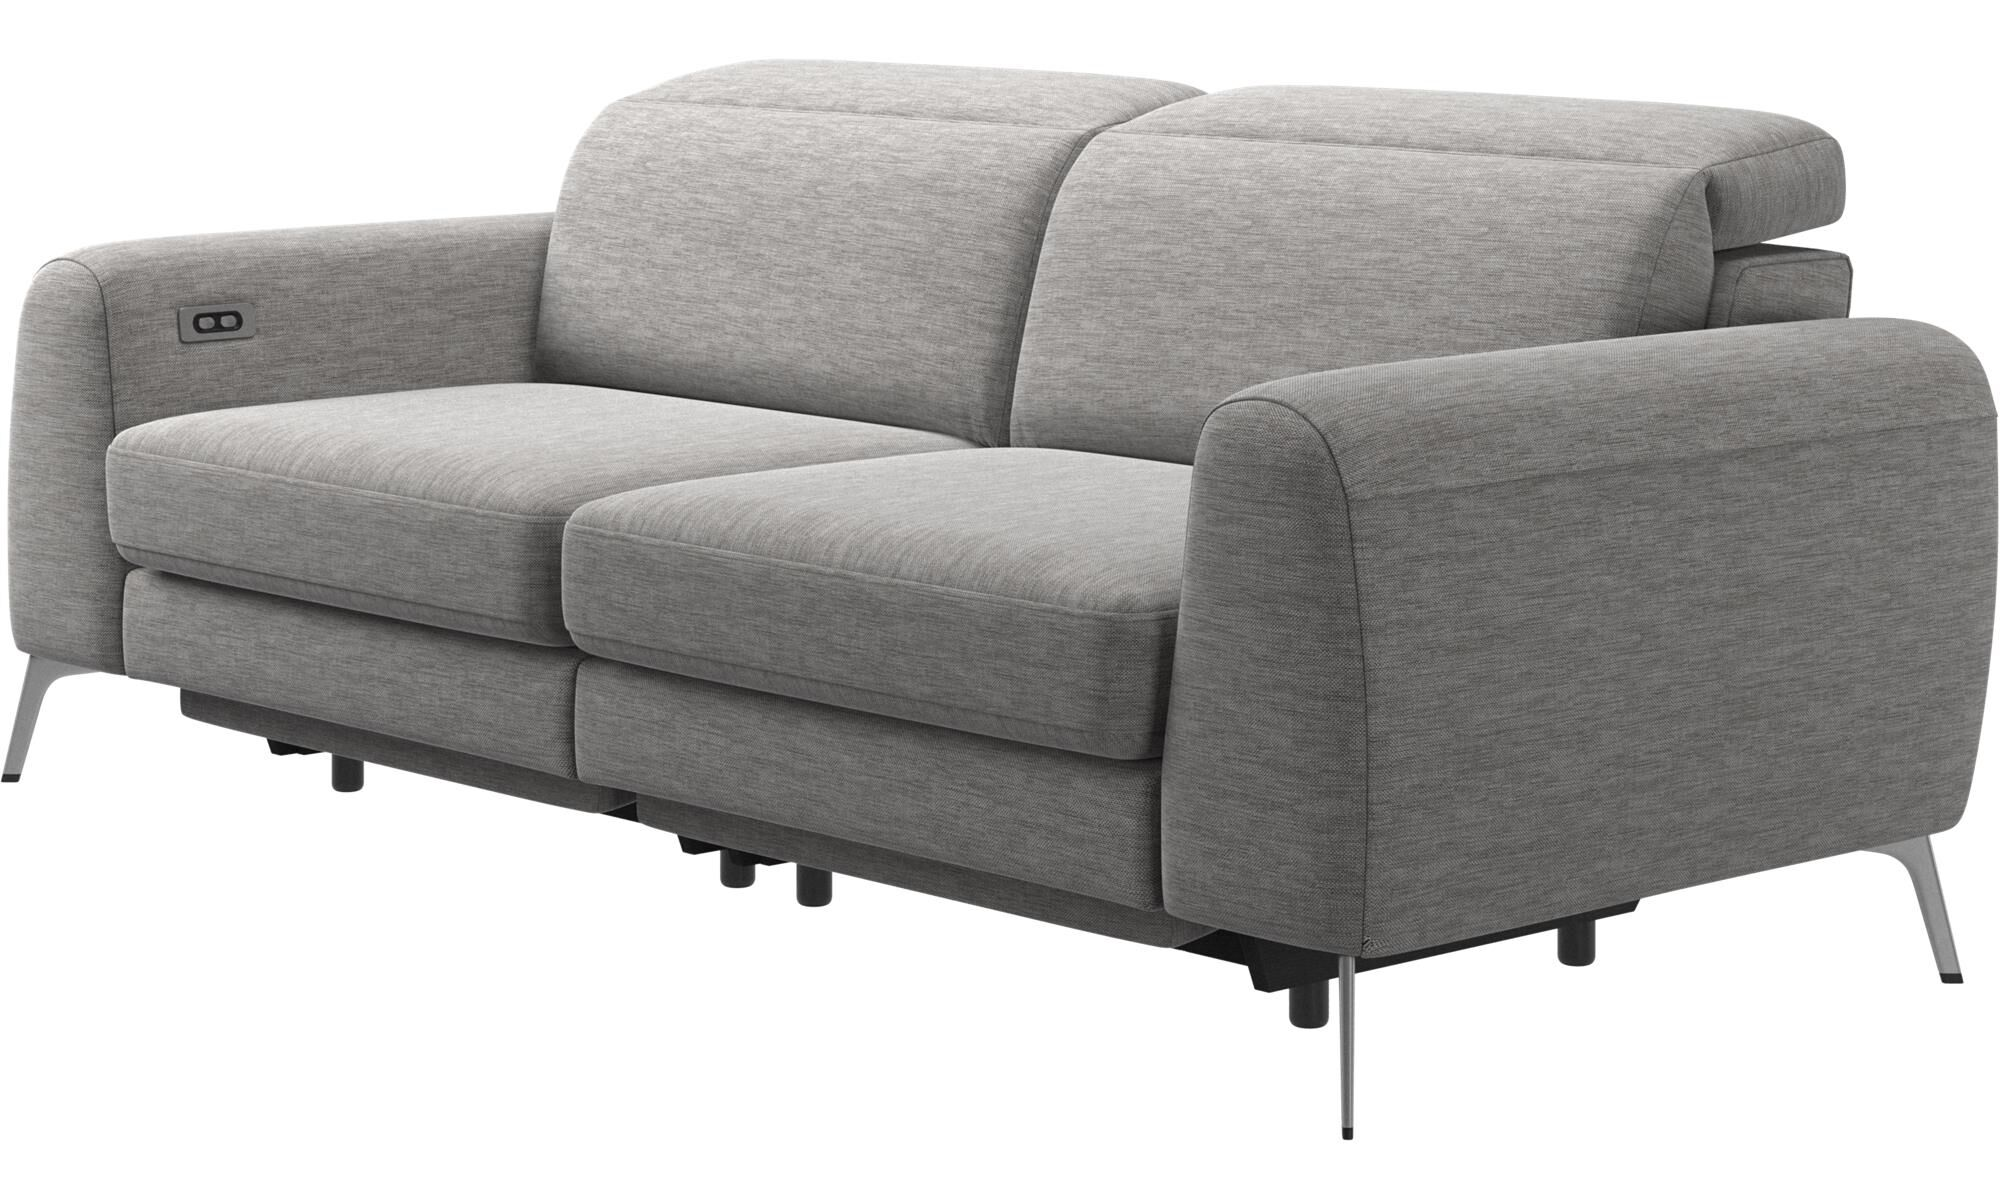 ... New Designs   Madison Sofa With Electric Seat, Head And Foot Rest  Motion (rechargeable ...